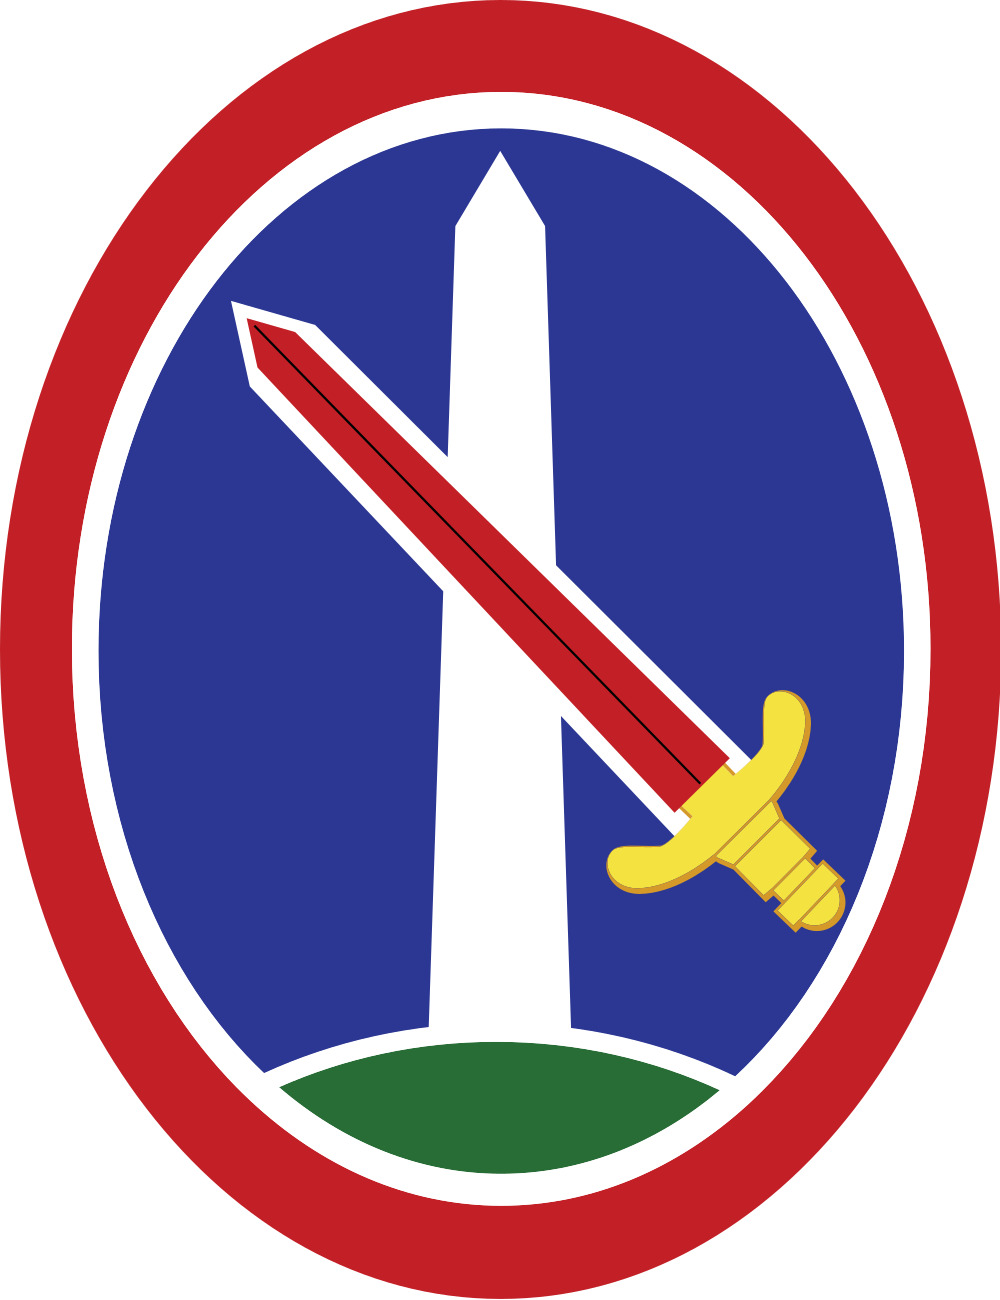 Military svg sign. File united states army